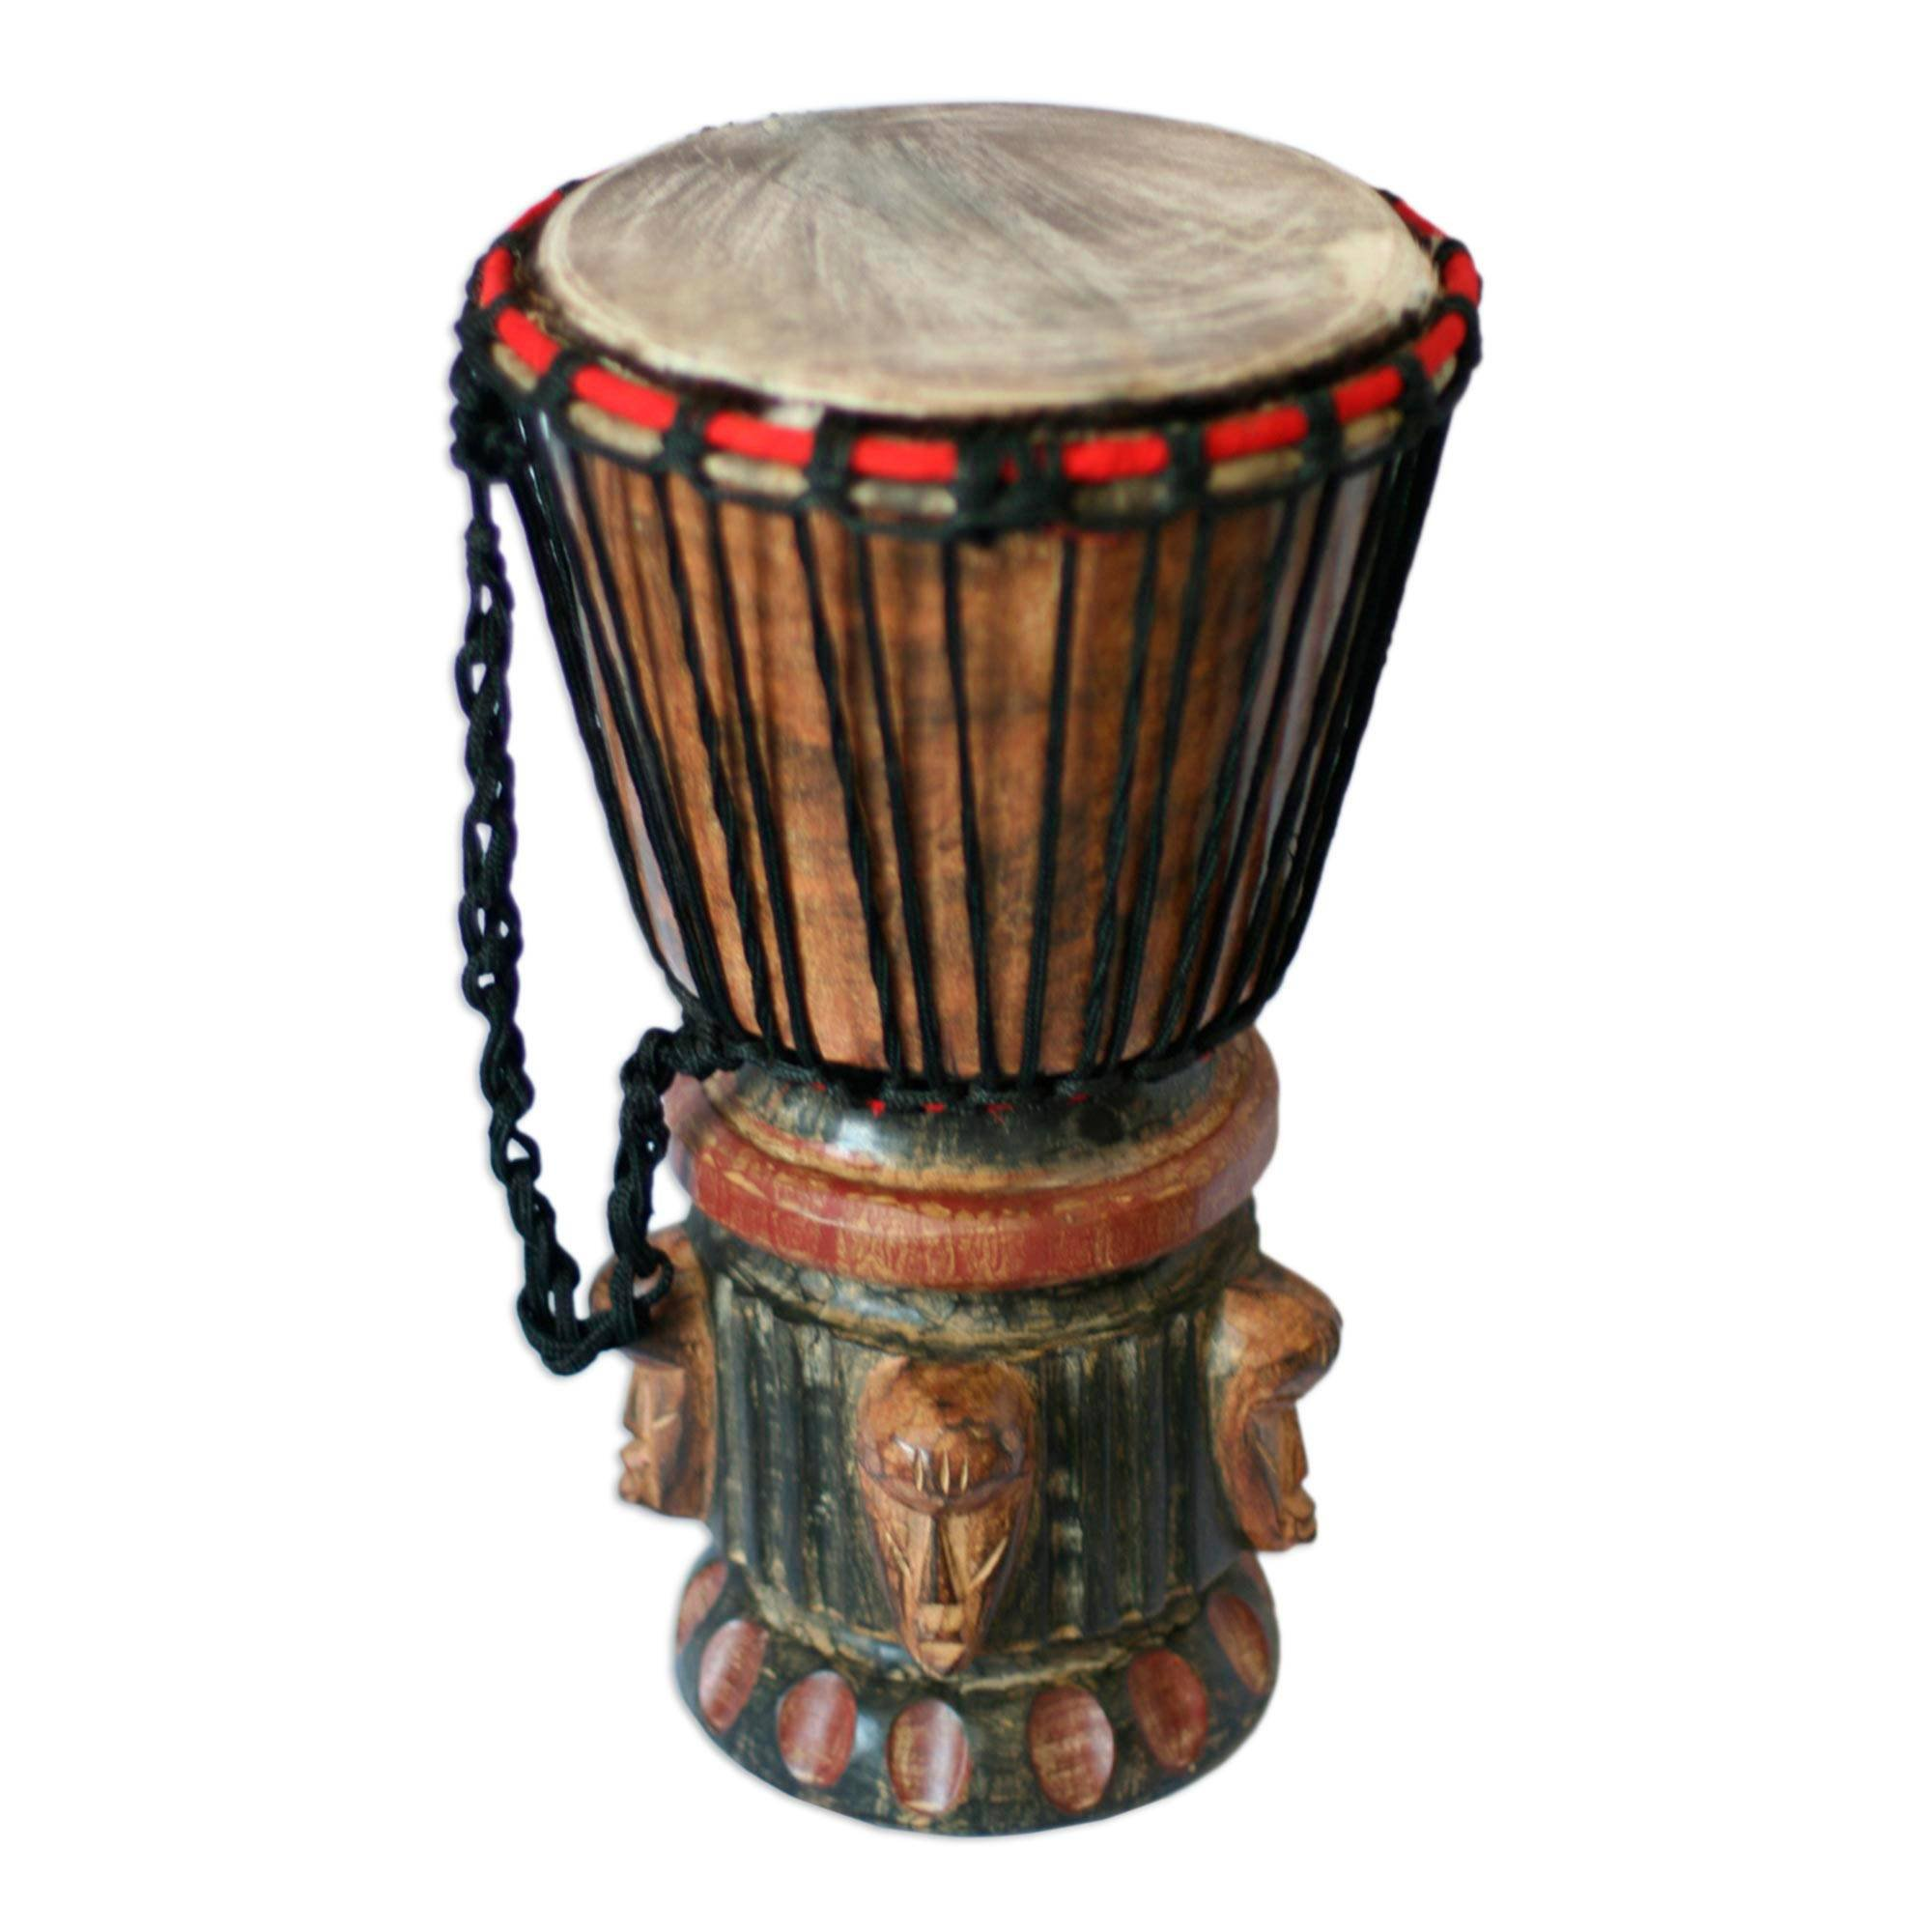 NOVICA 156993 Think Together' Wood Djembe Drum by NOVICA